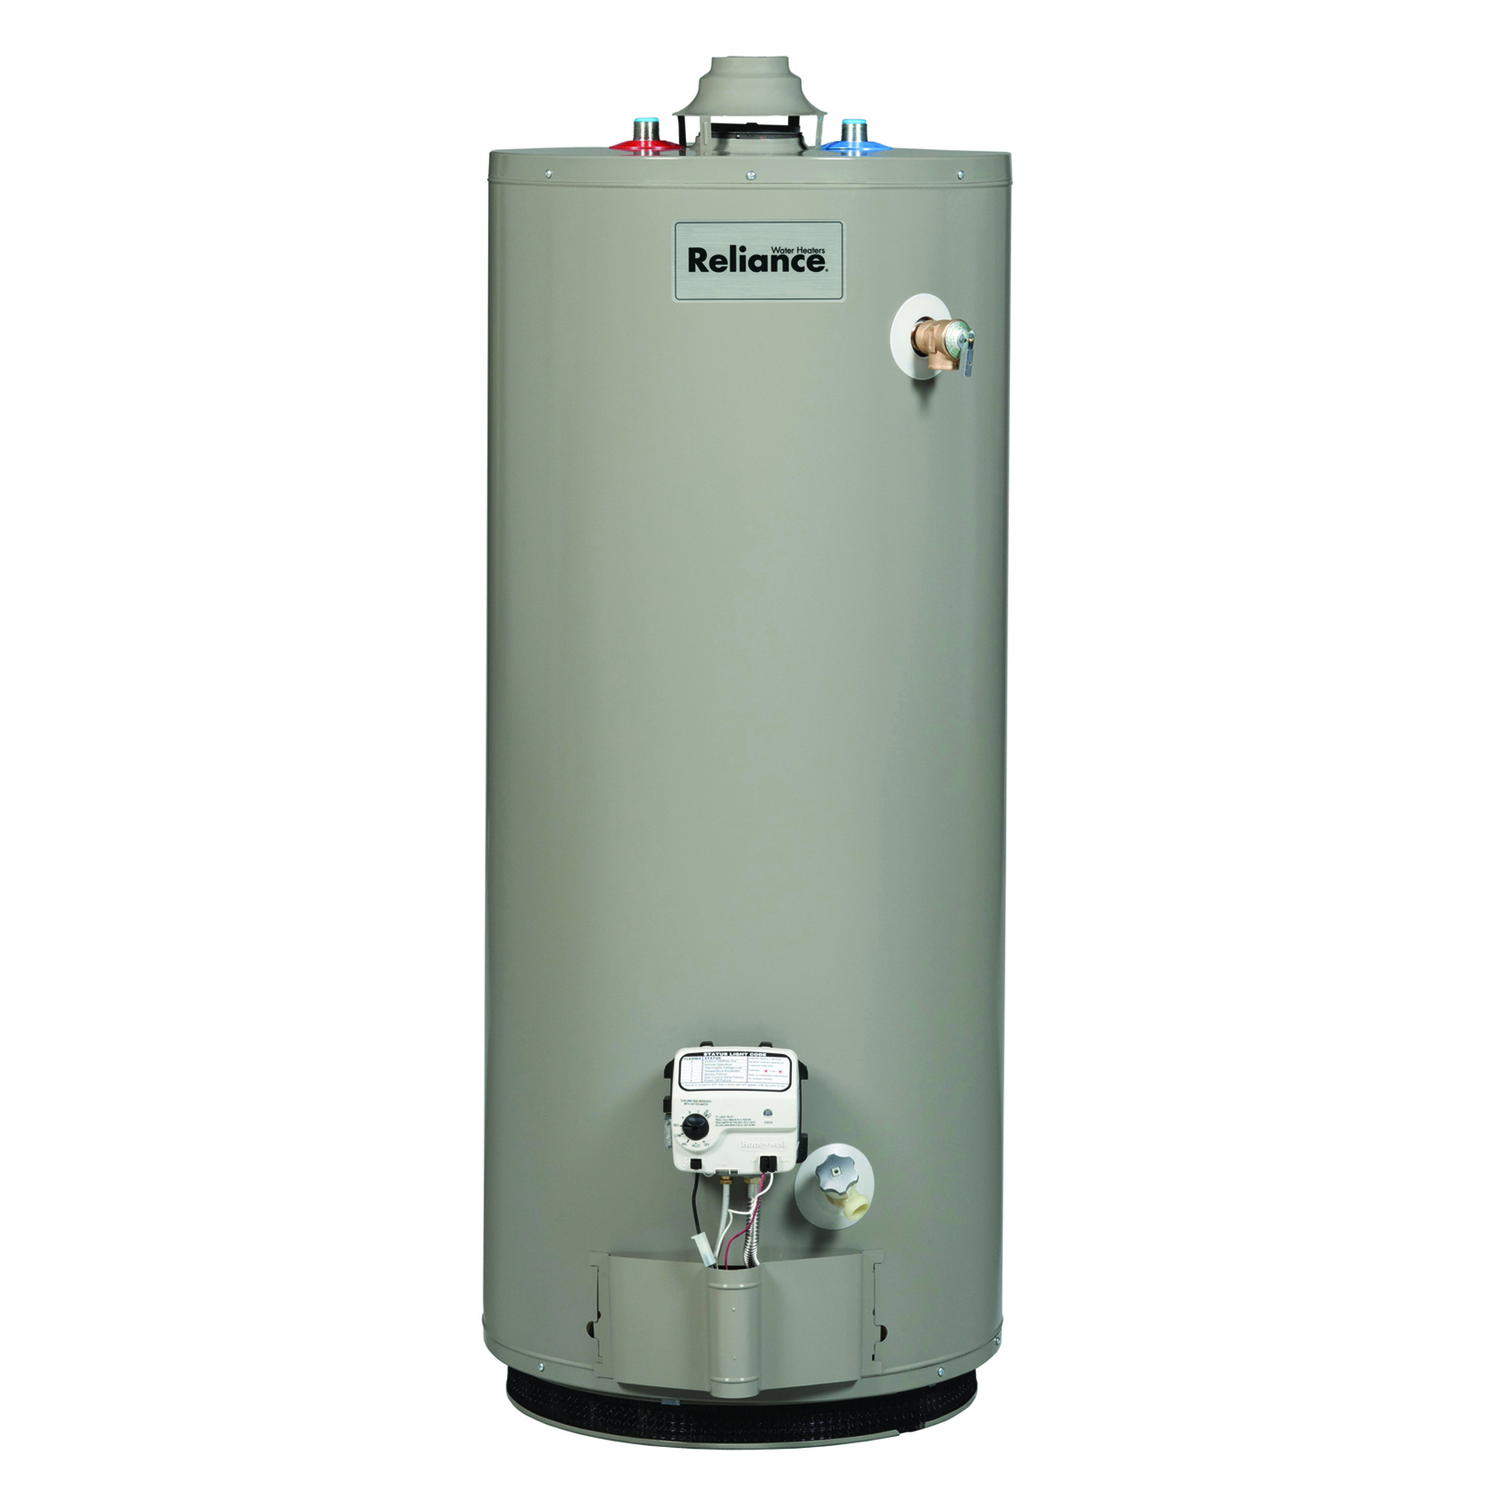 Water Heaters - Hot Water Heaters & Tanks at Ace Hardware